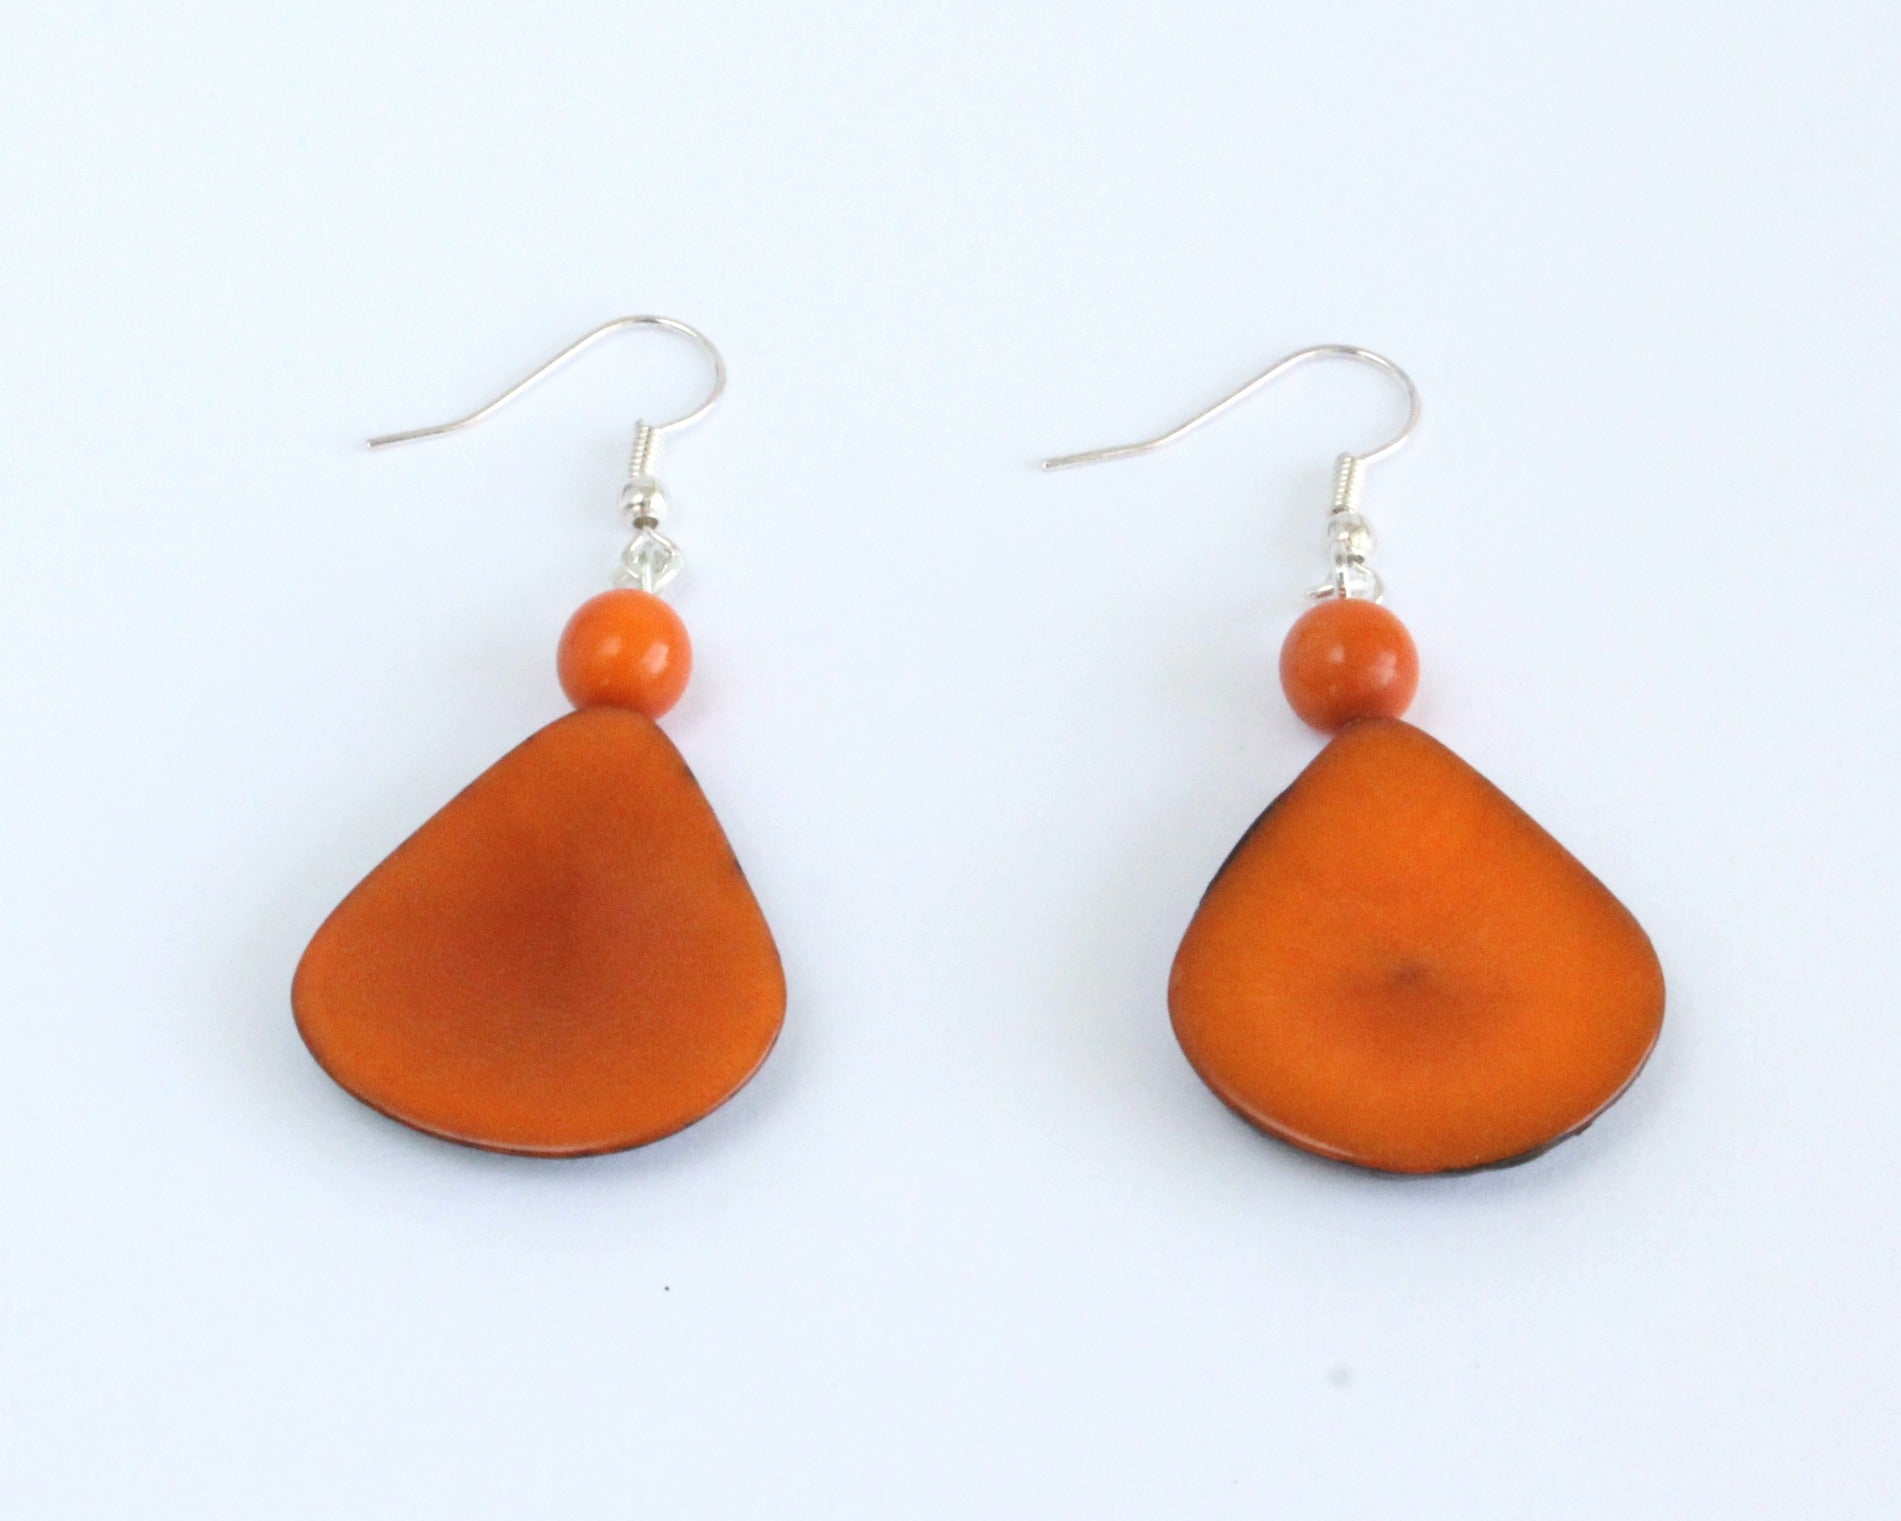 Handmade earring, fish hook, tagua, colourful, orange, back